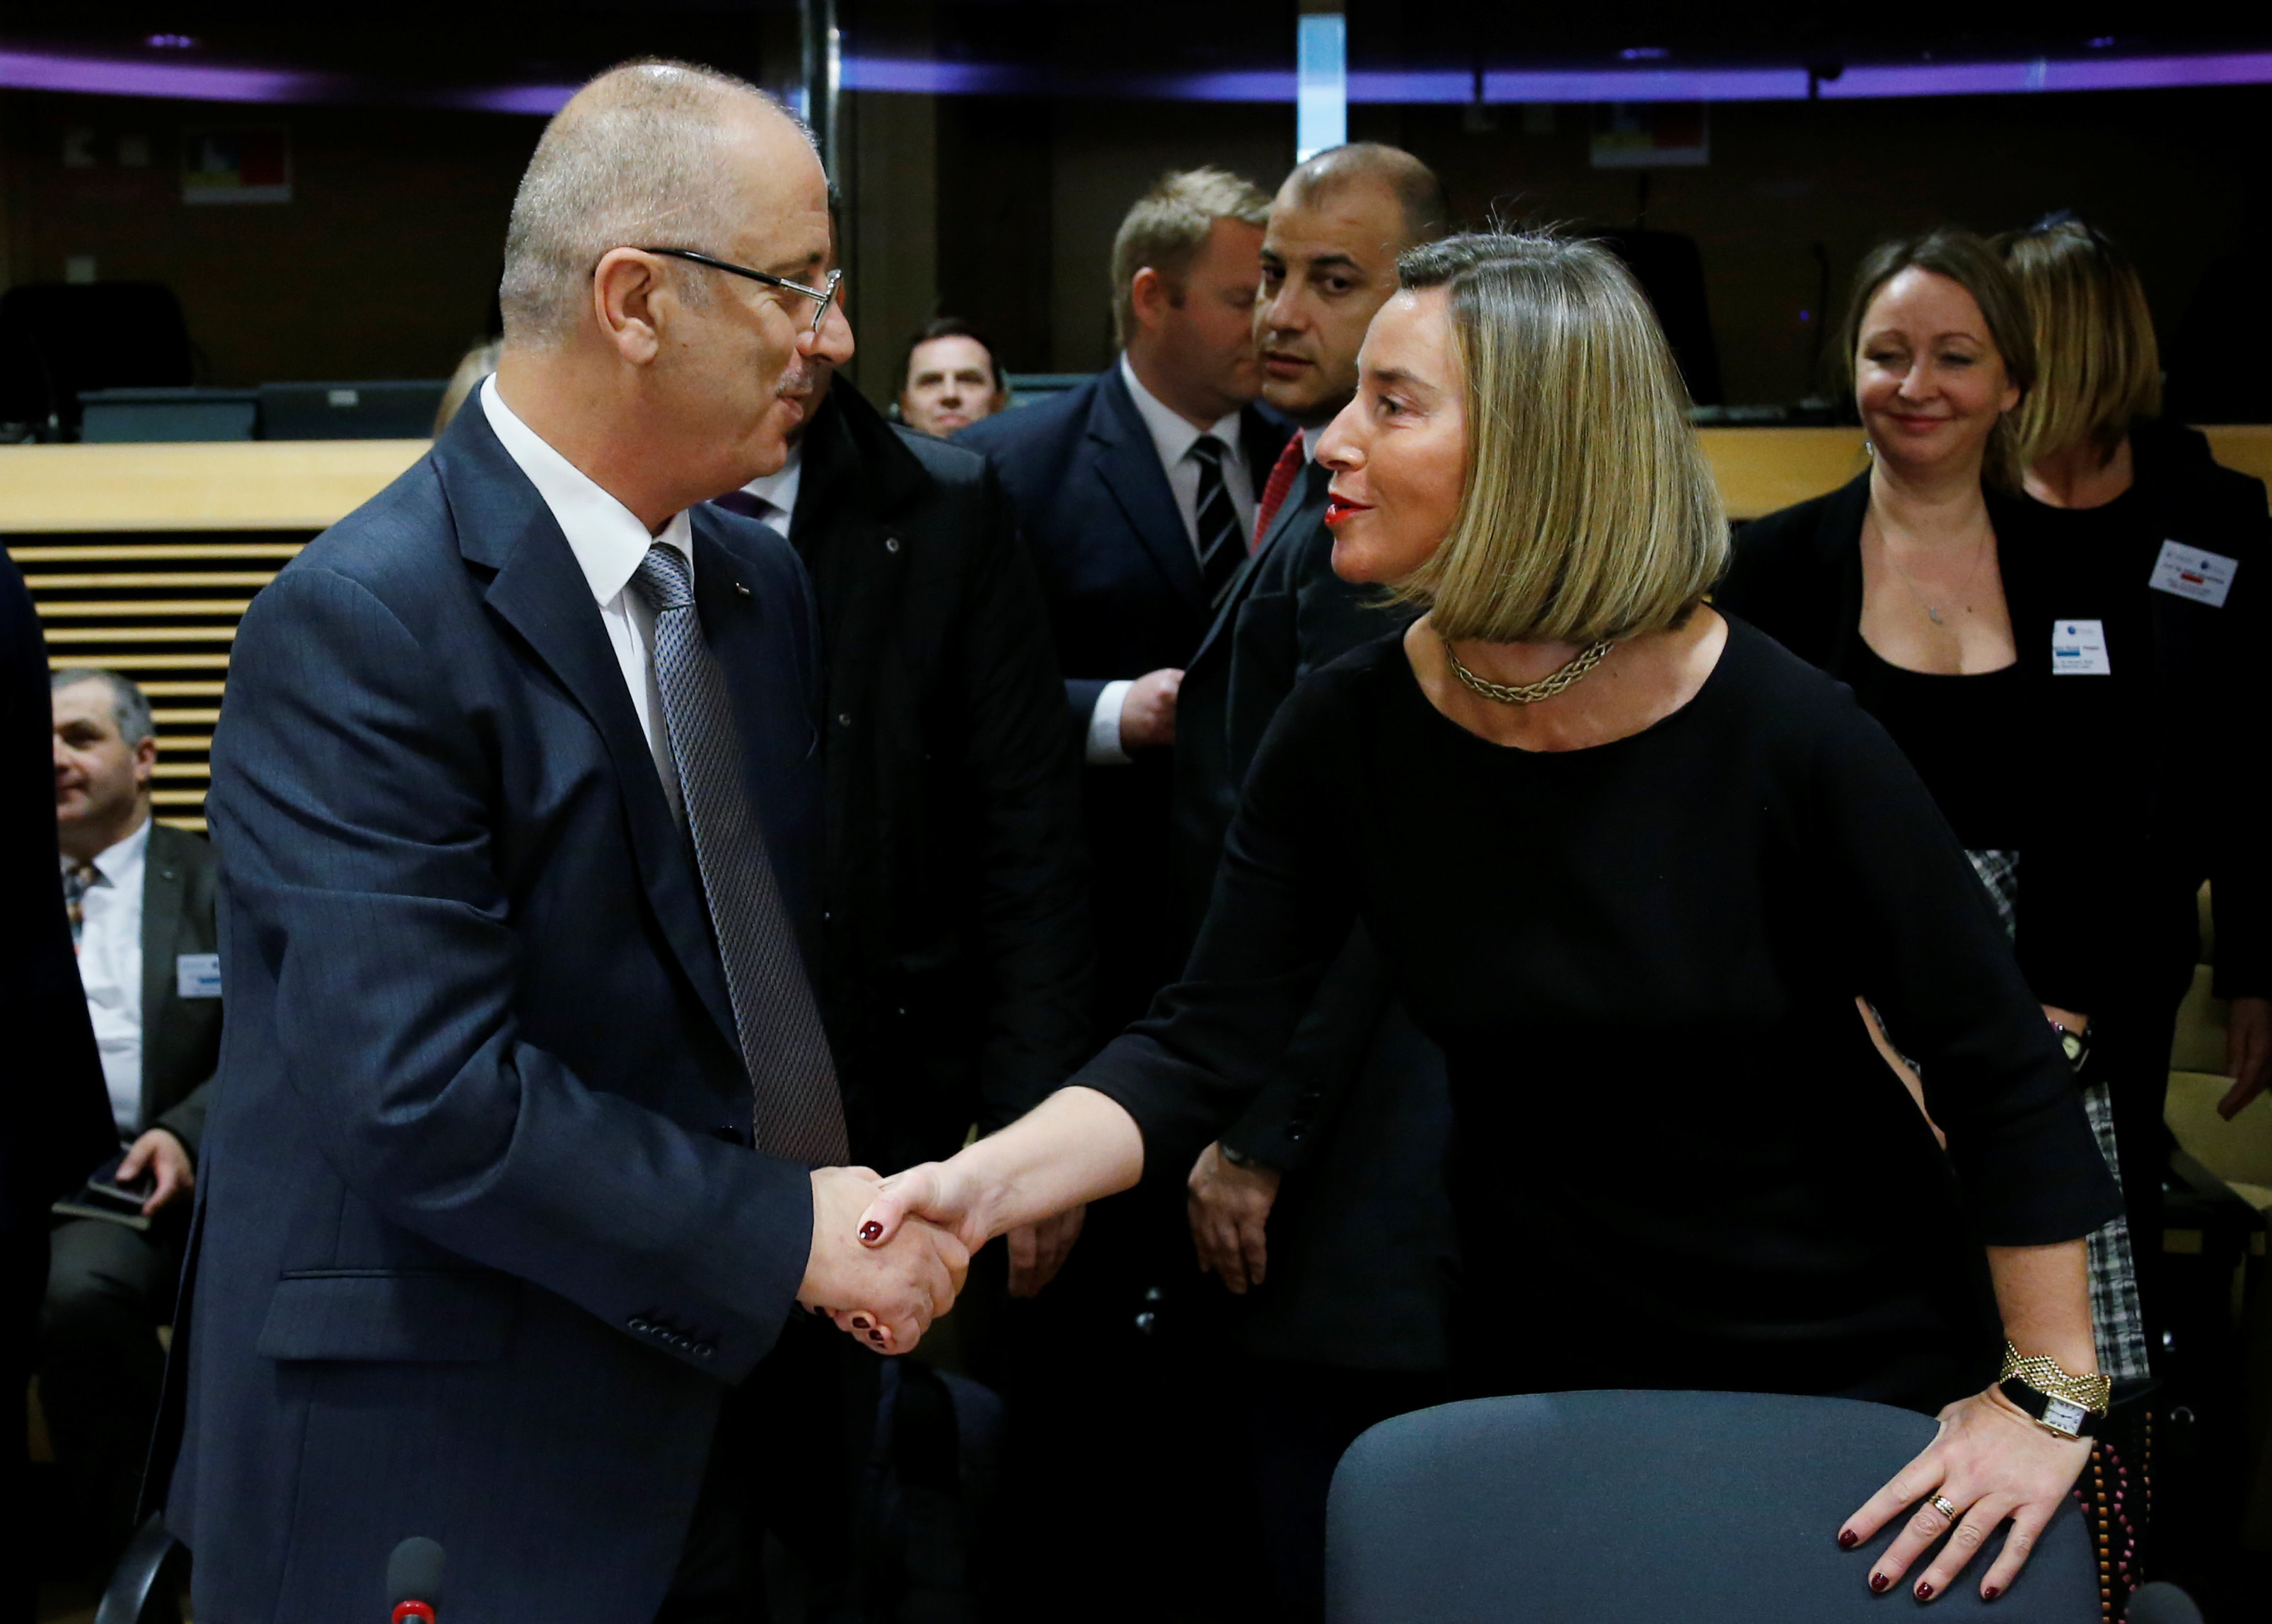 Palestinian Prime Minister Rami Hamdallah shakes hands with European Union's foreign policy chief Federica Mogherini at the EU Commission headquarters in Brussels, Belgium, January 31, 2018. (Reuters)